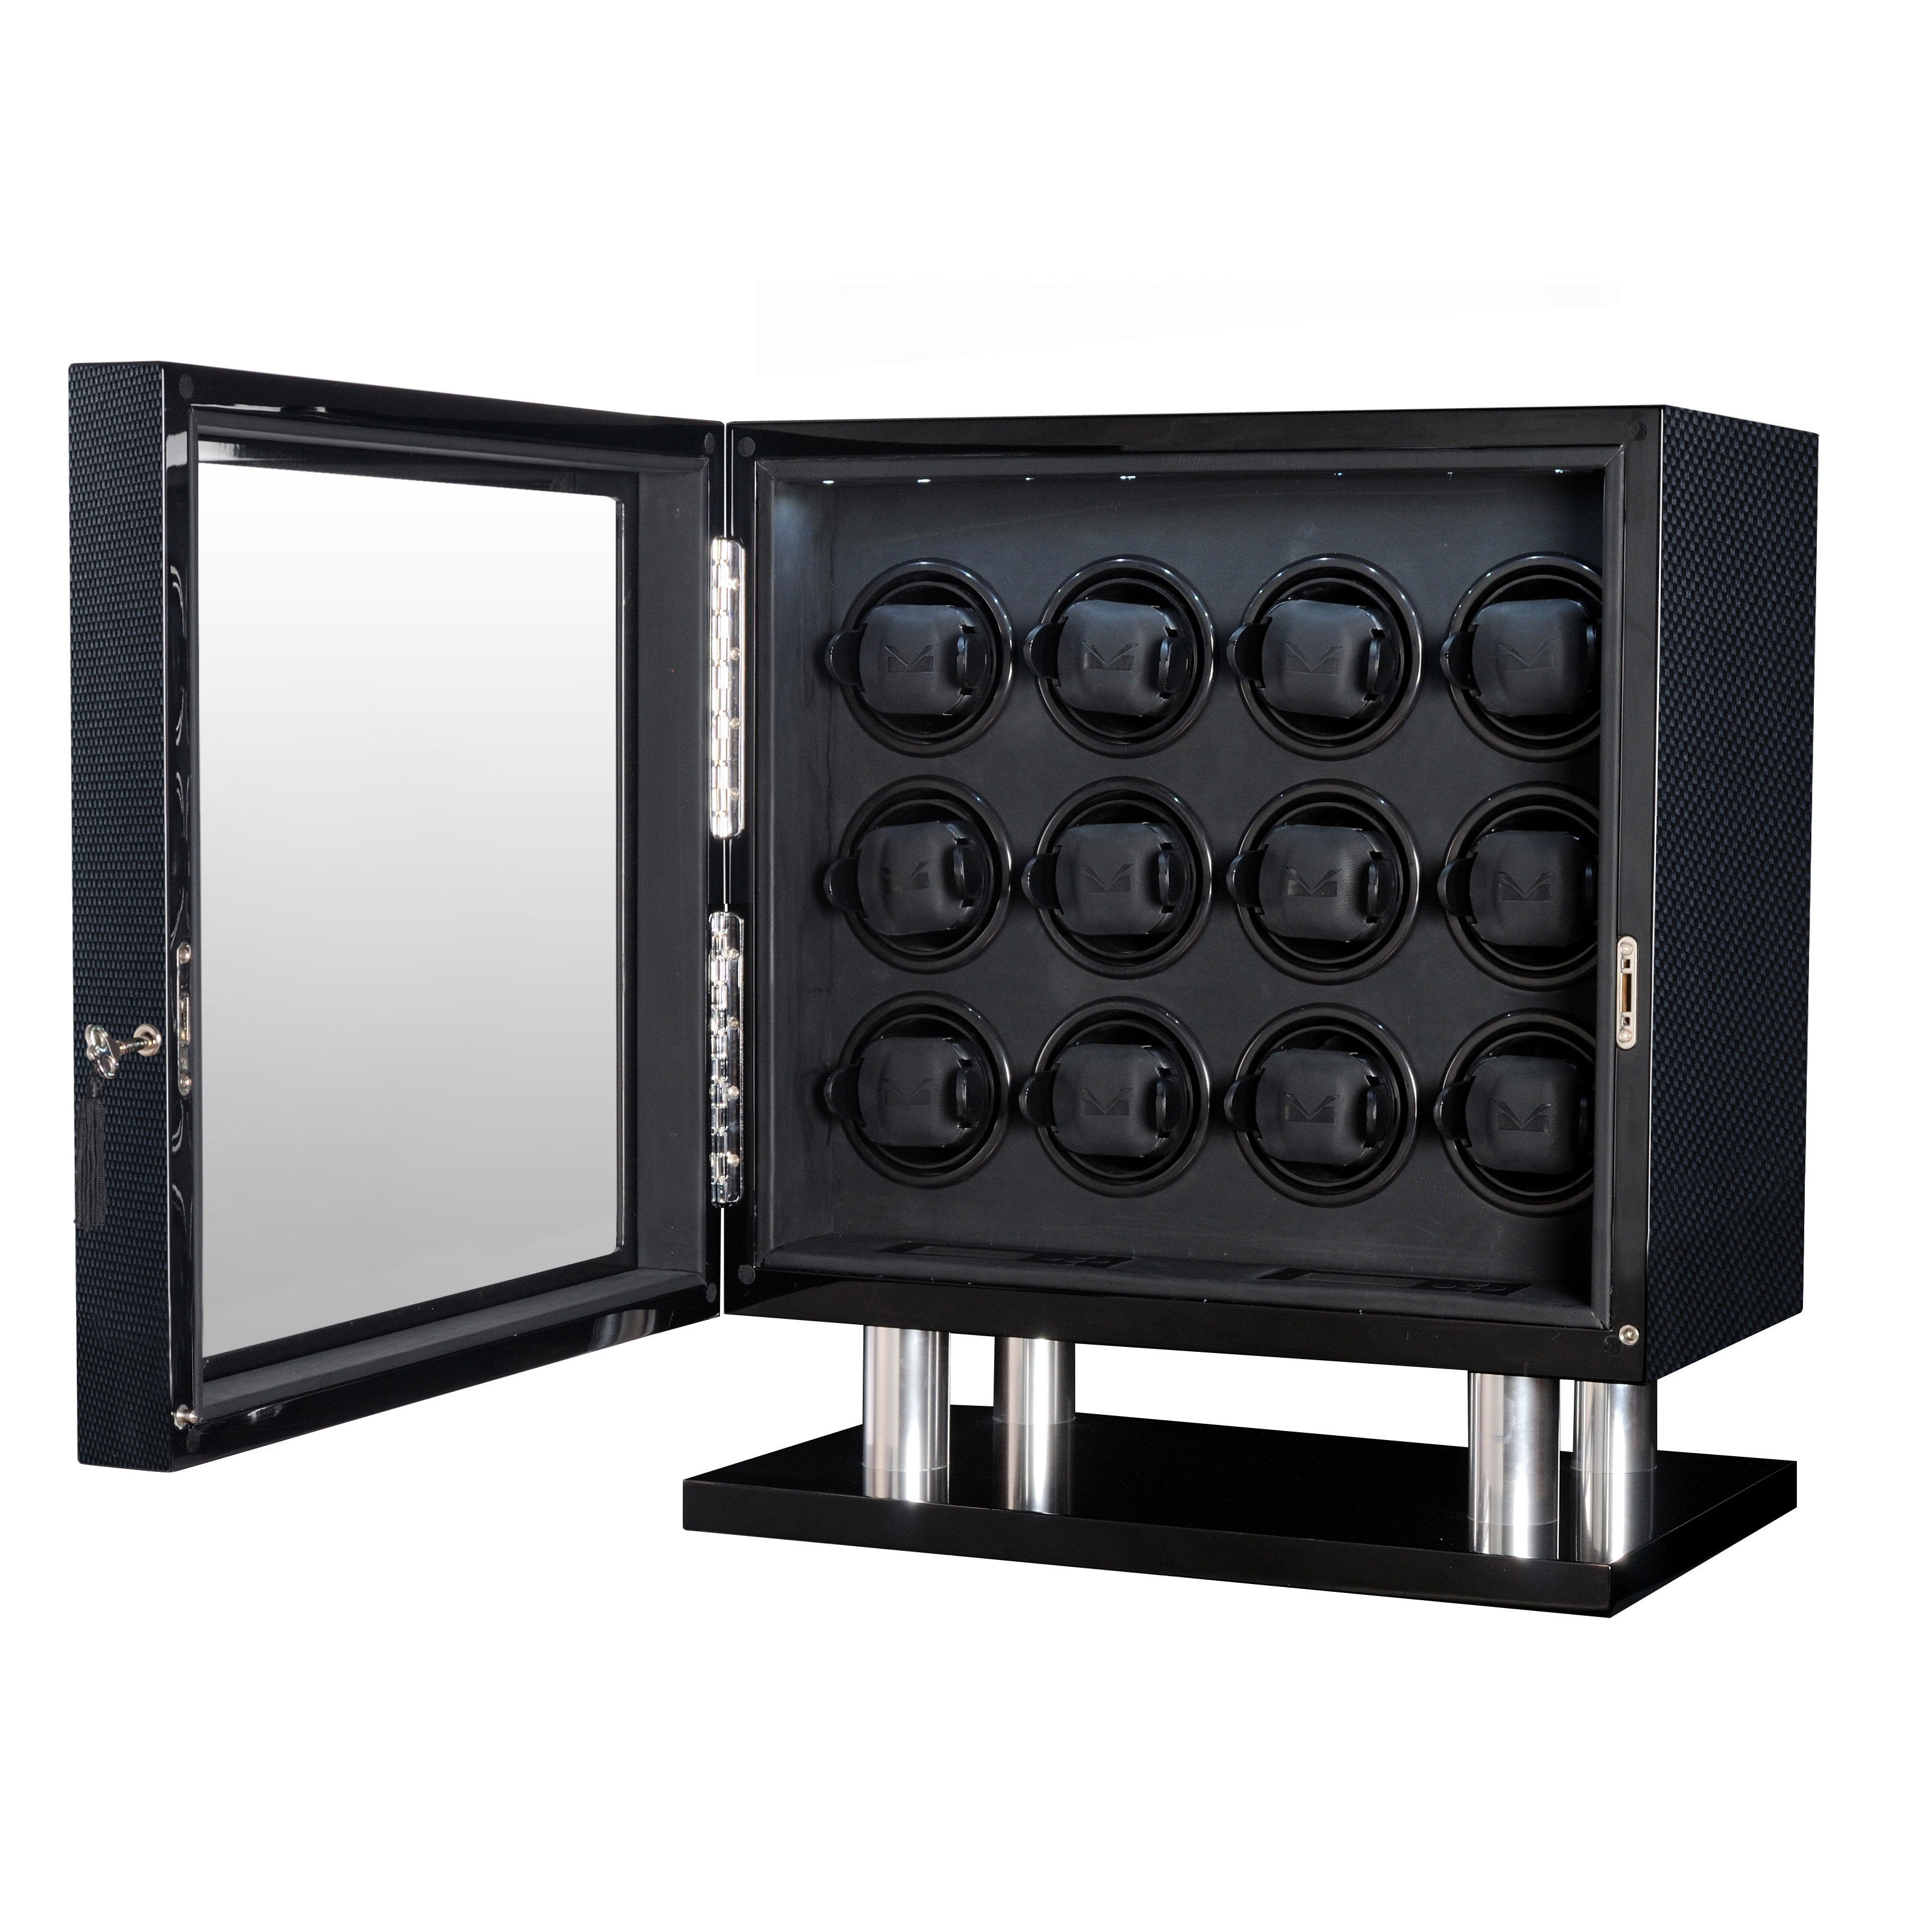 Allurez High Gloss Carbon Fiber Twelve Watch Winder w/ Bl...